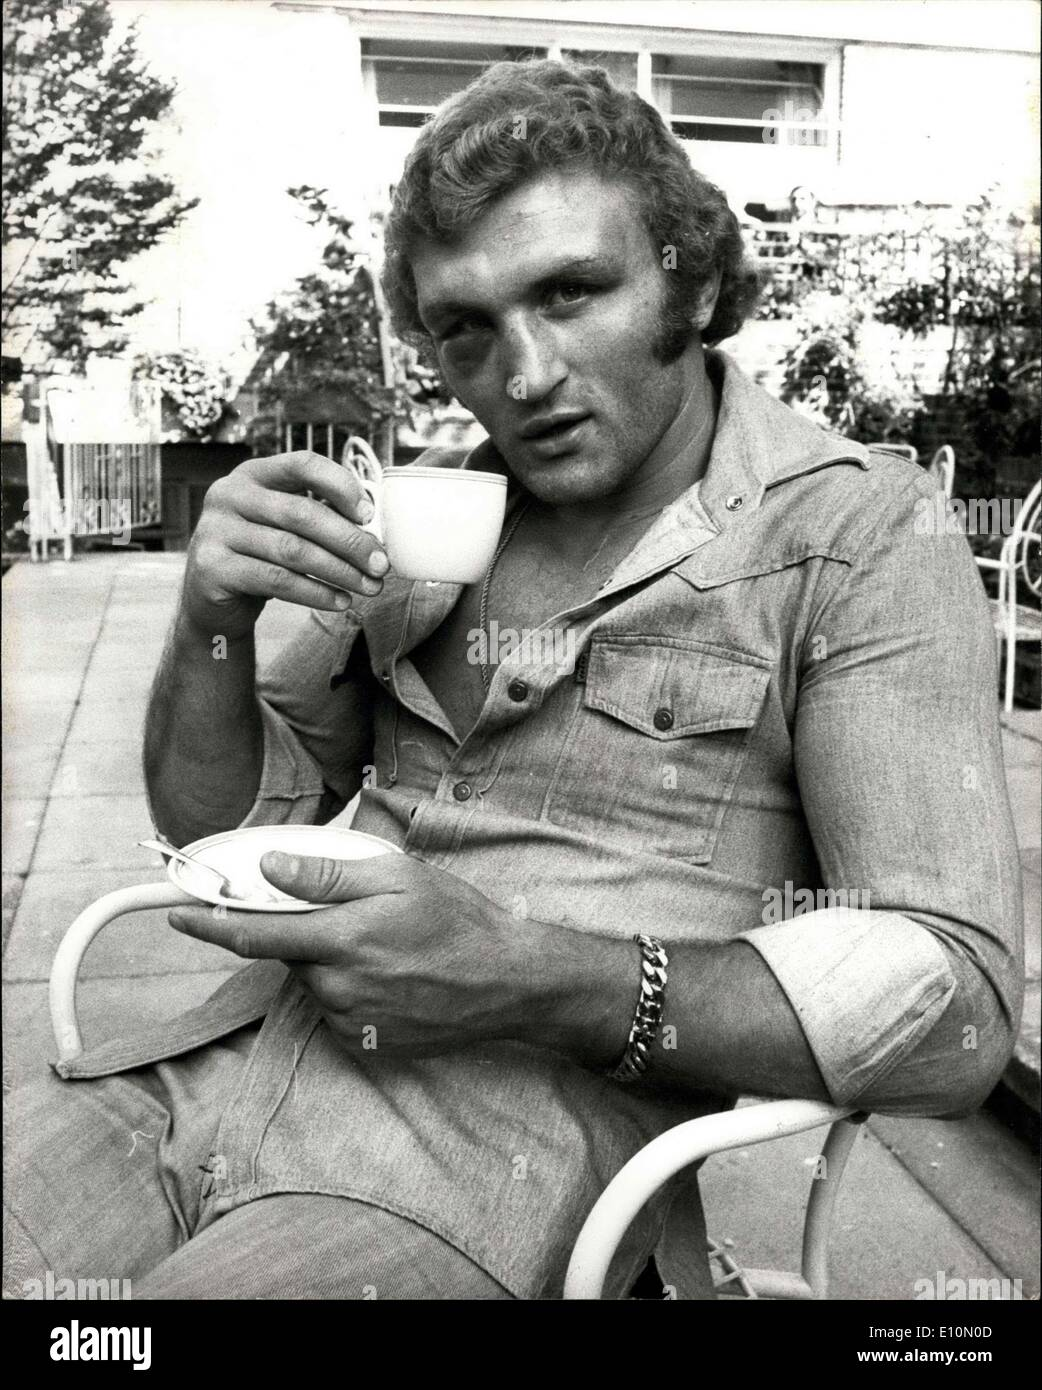 Jul. 03, 1973 - Joe Bugner Resting At His London Hotel Joe Bugner the British European Heavyweight Champion who lost on points to former World Heavyweight Champion Joe Frazier at Earls Court last night, was resting at his hotel this morning. Photo Shows:- Joe Bugner seen enjoying a cup of tea at the Kensington Close hotel this morning. - Stock Image